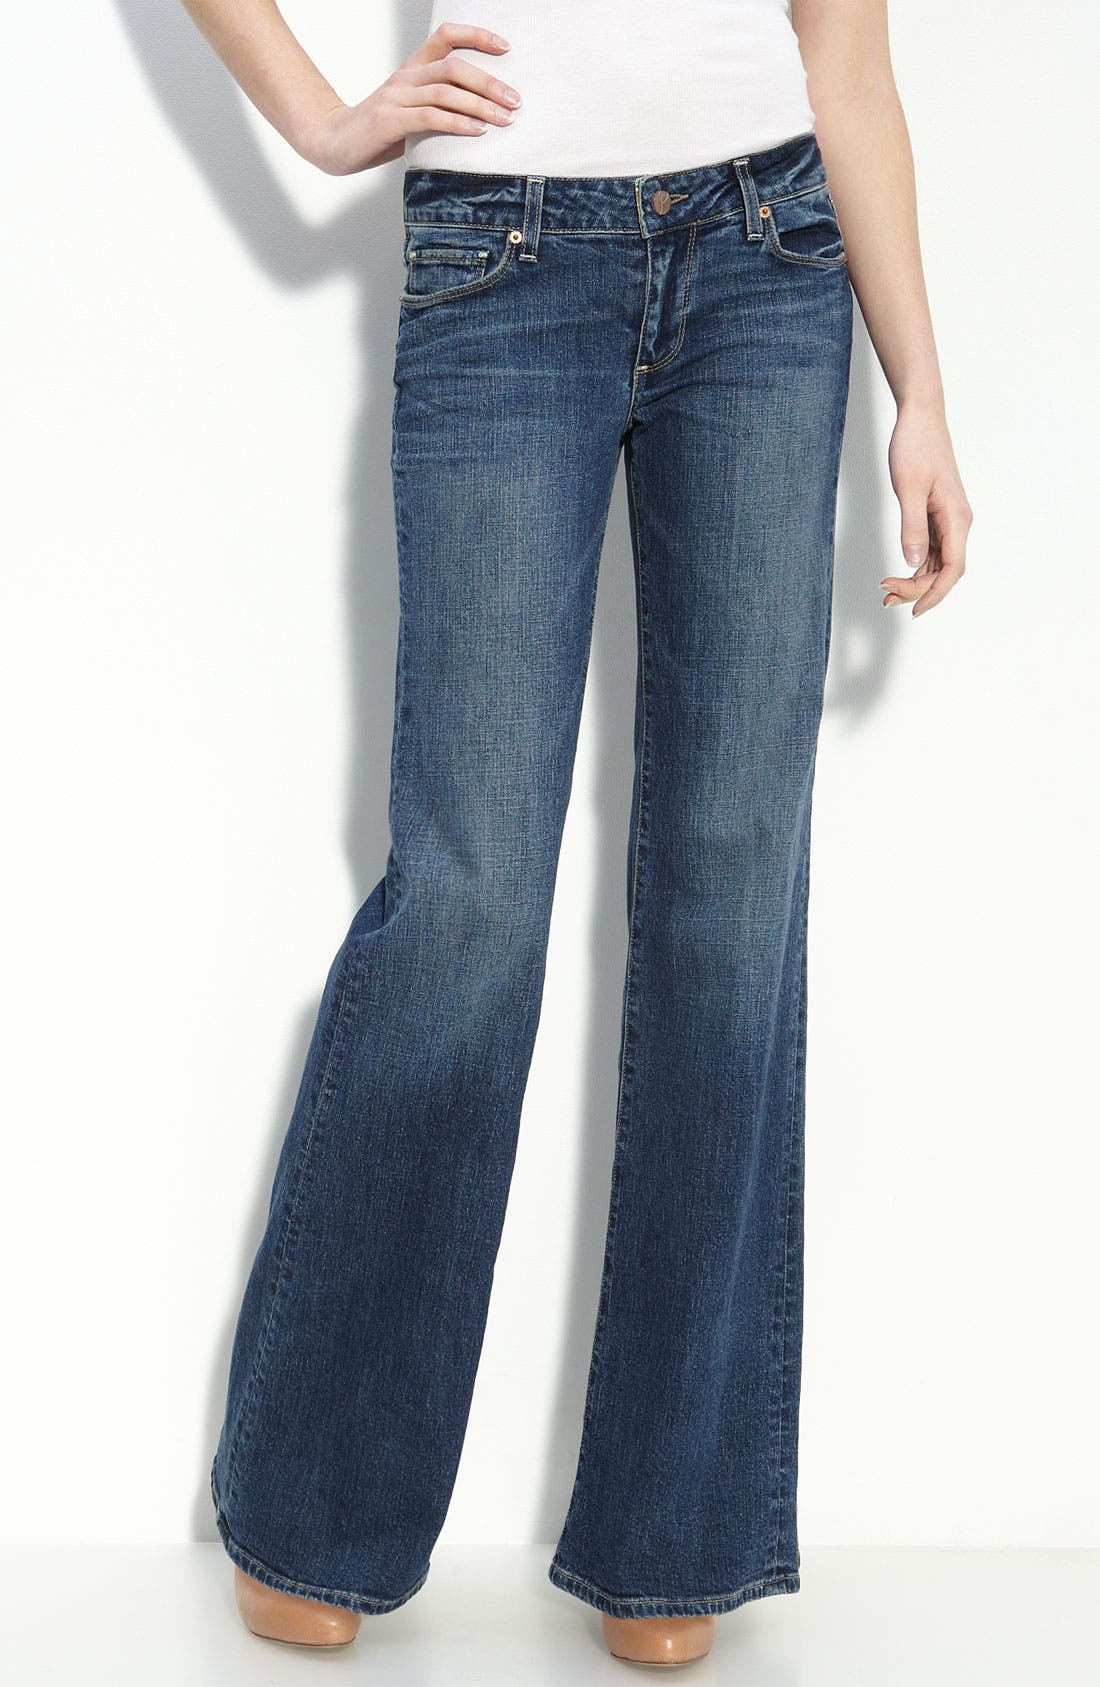 Main Image - Paige Denim 'Bentley' Stretch Denim Trouser Jeans (Colette Wash)